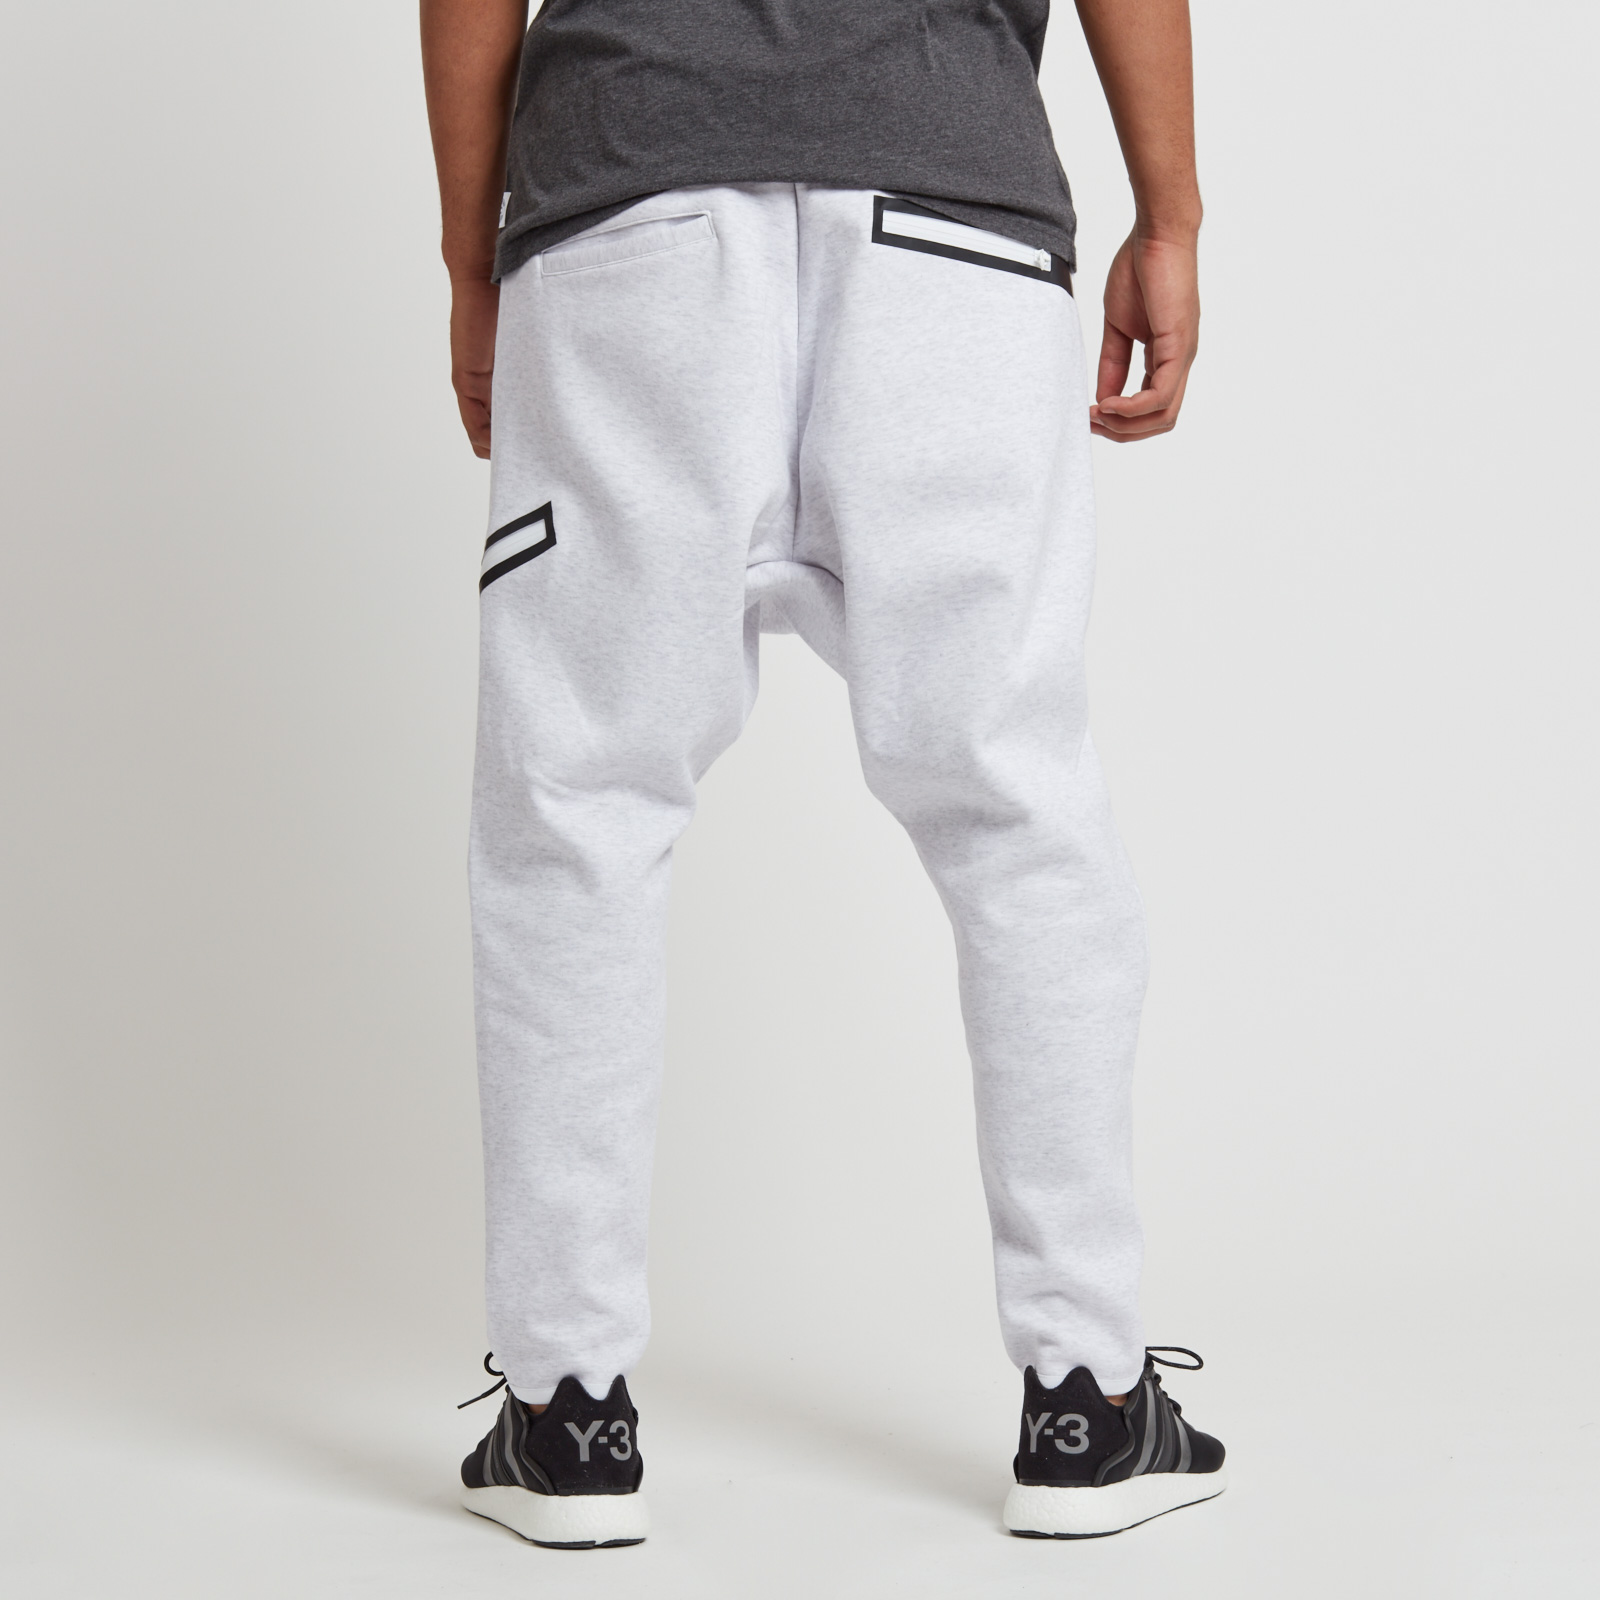 adidas Y-3 Future SP Pants - B49851 - Sneakersnstuff  7a60e4b65695